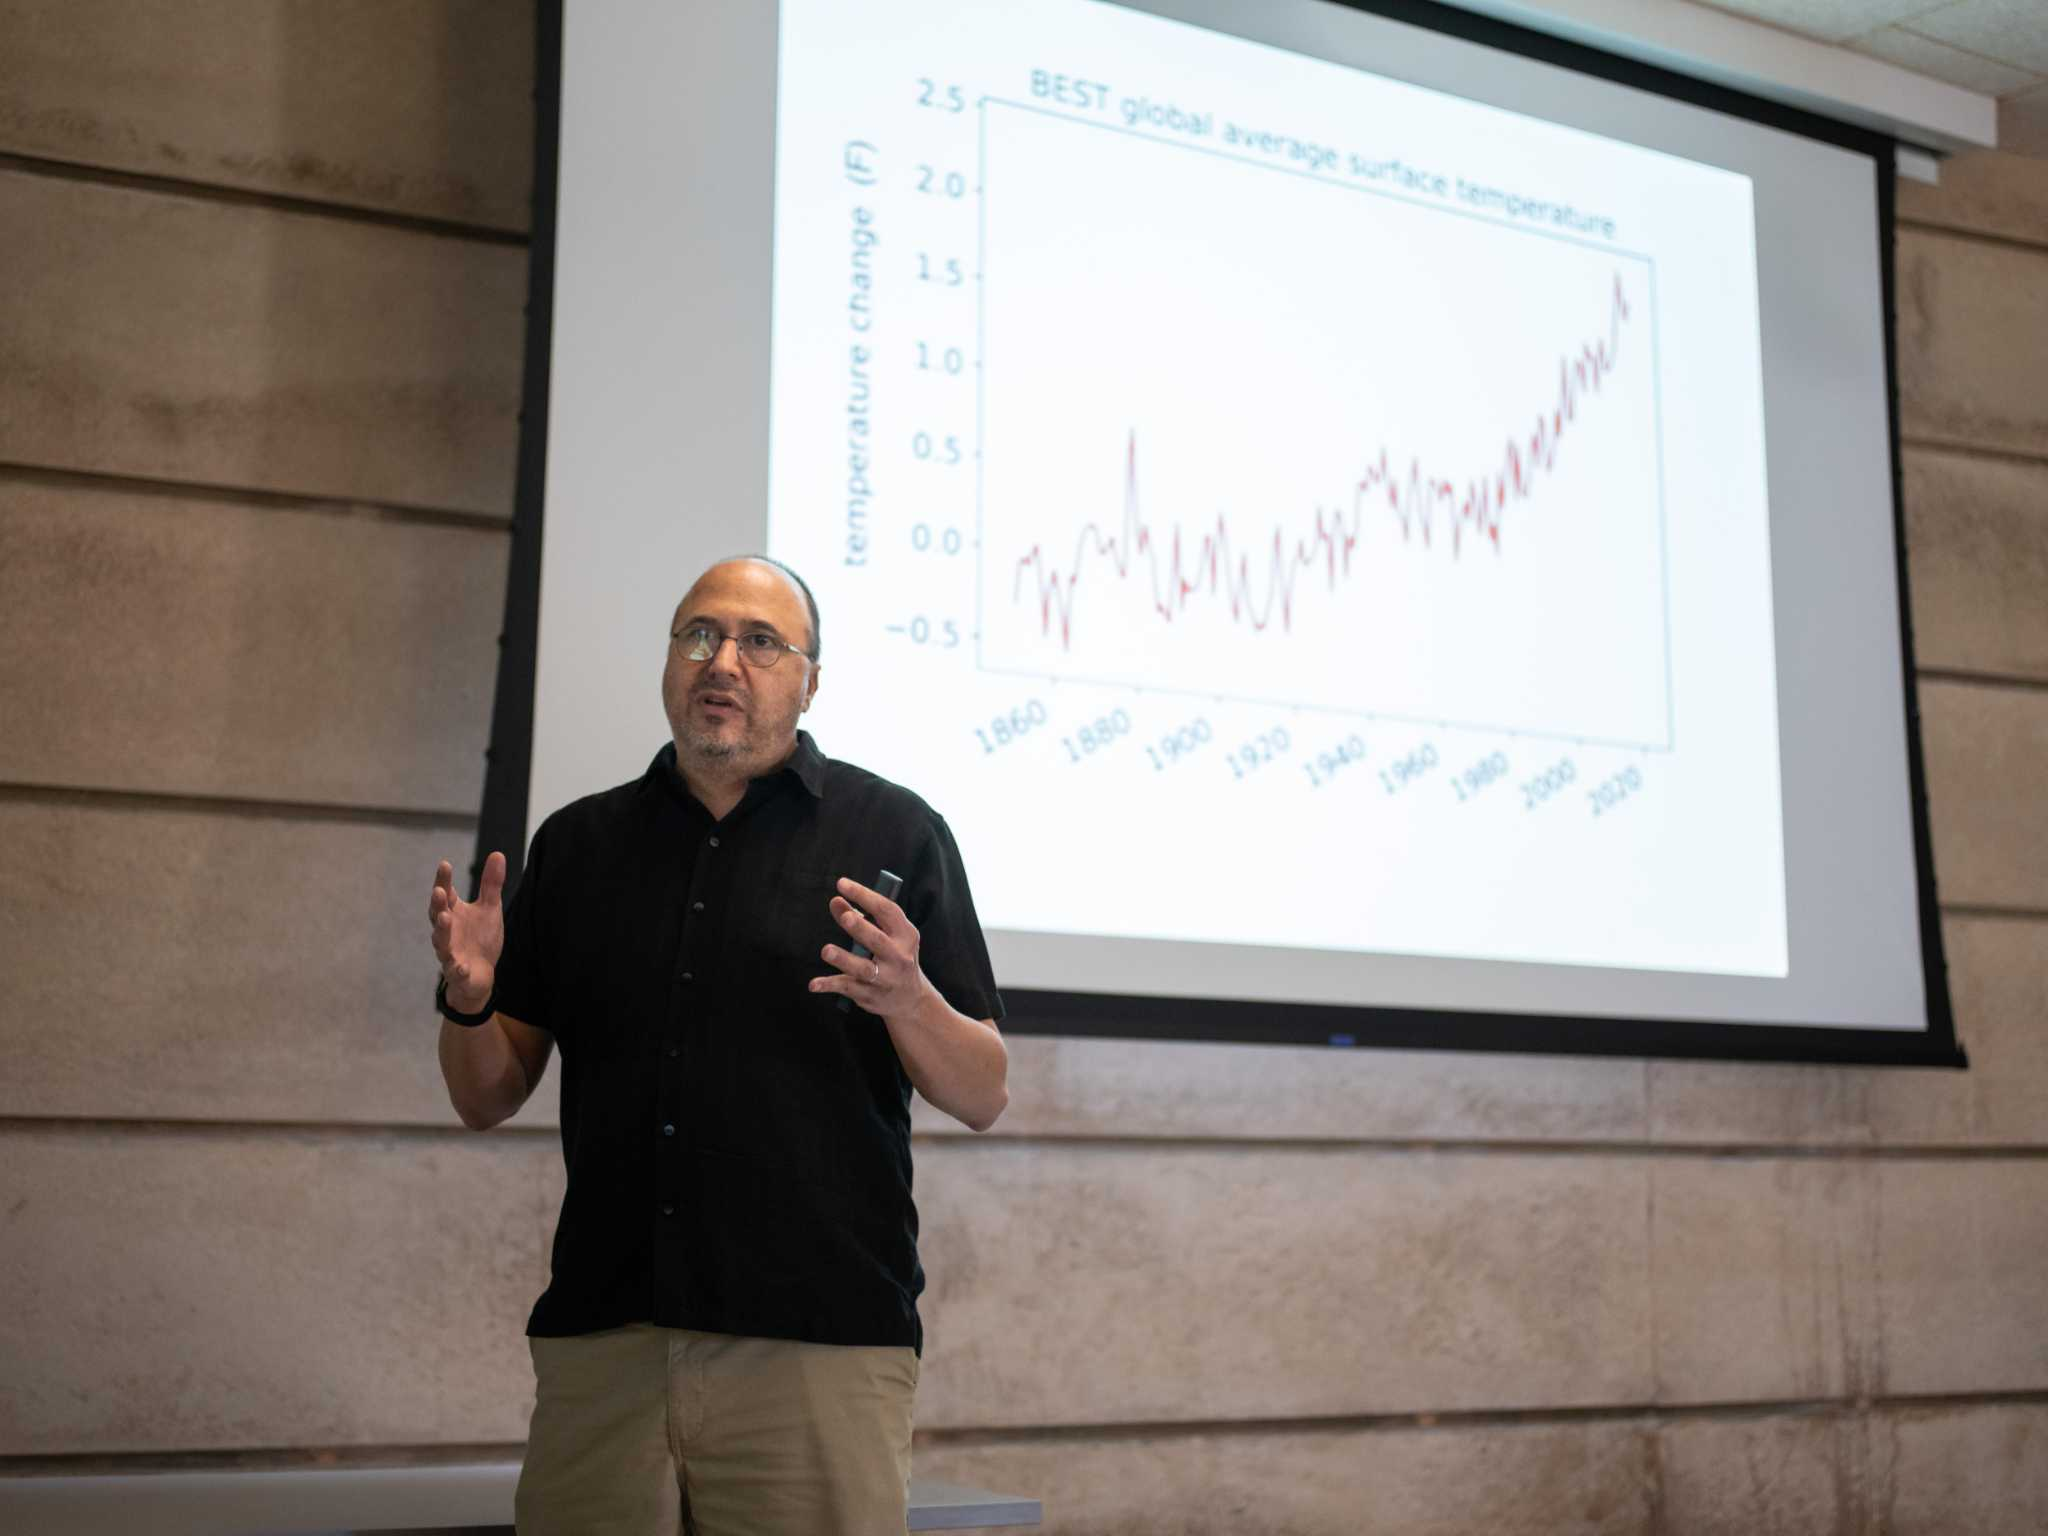 Scientist warns of economic costs of climate change - San Antonio Express-News